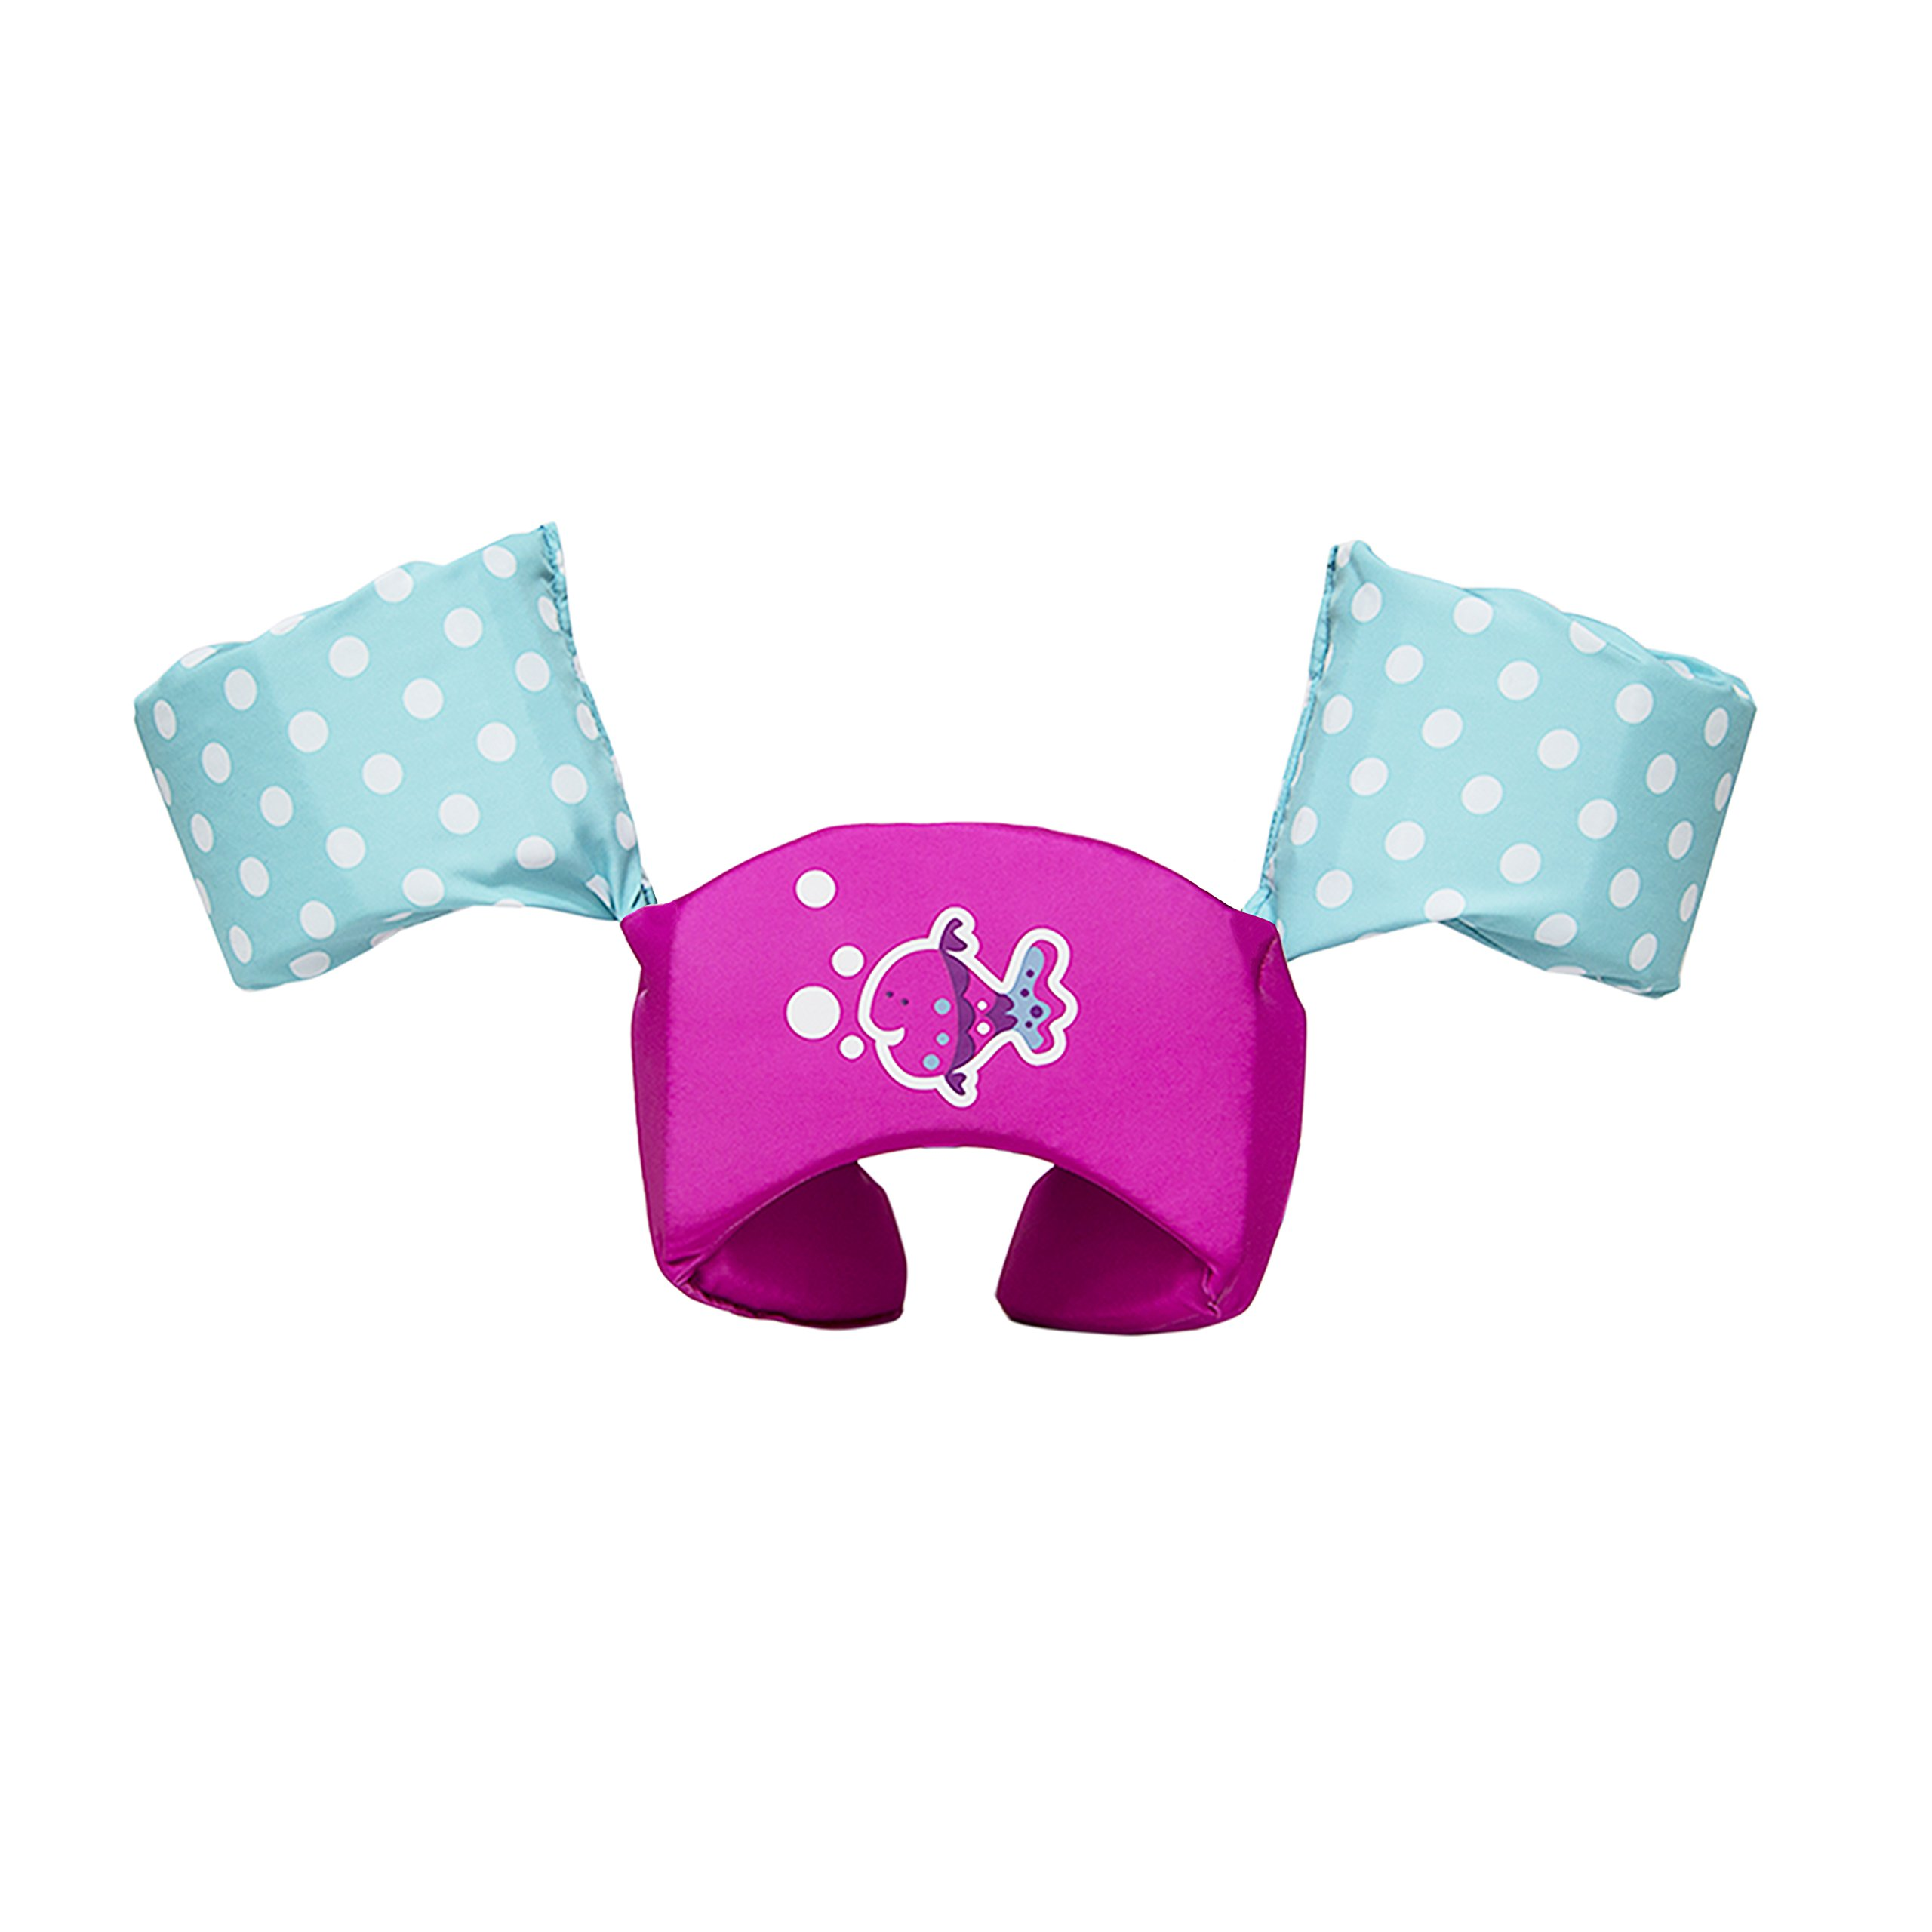 SwimWays Sea Squirts Life Jacket Swim Trainer - USCG Approved - Pink Fish by SwimWays (Image #1)